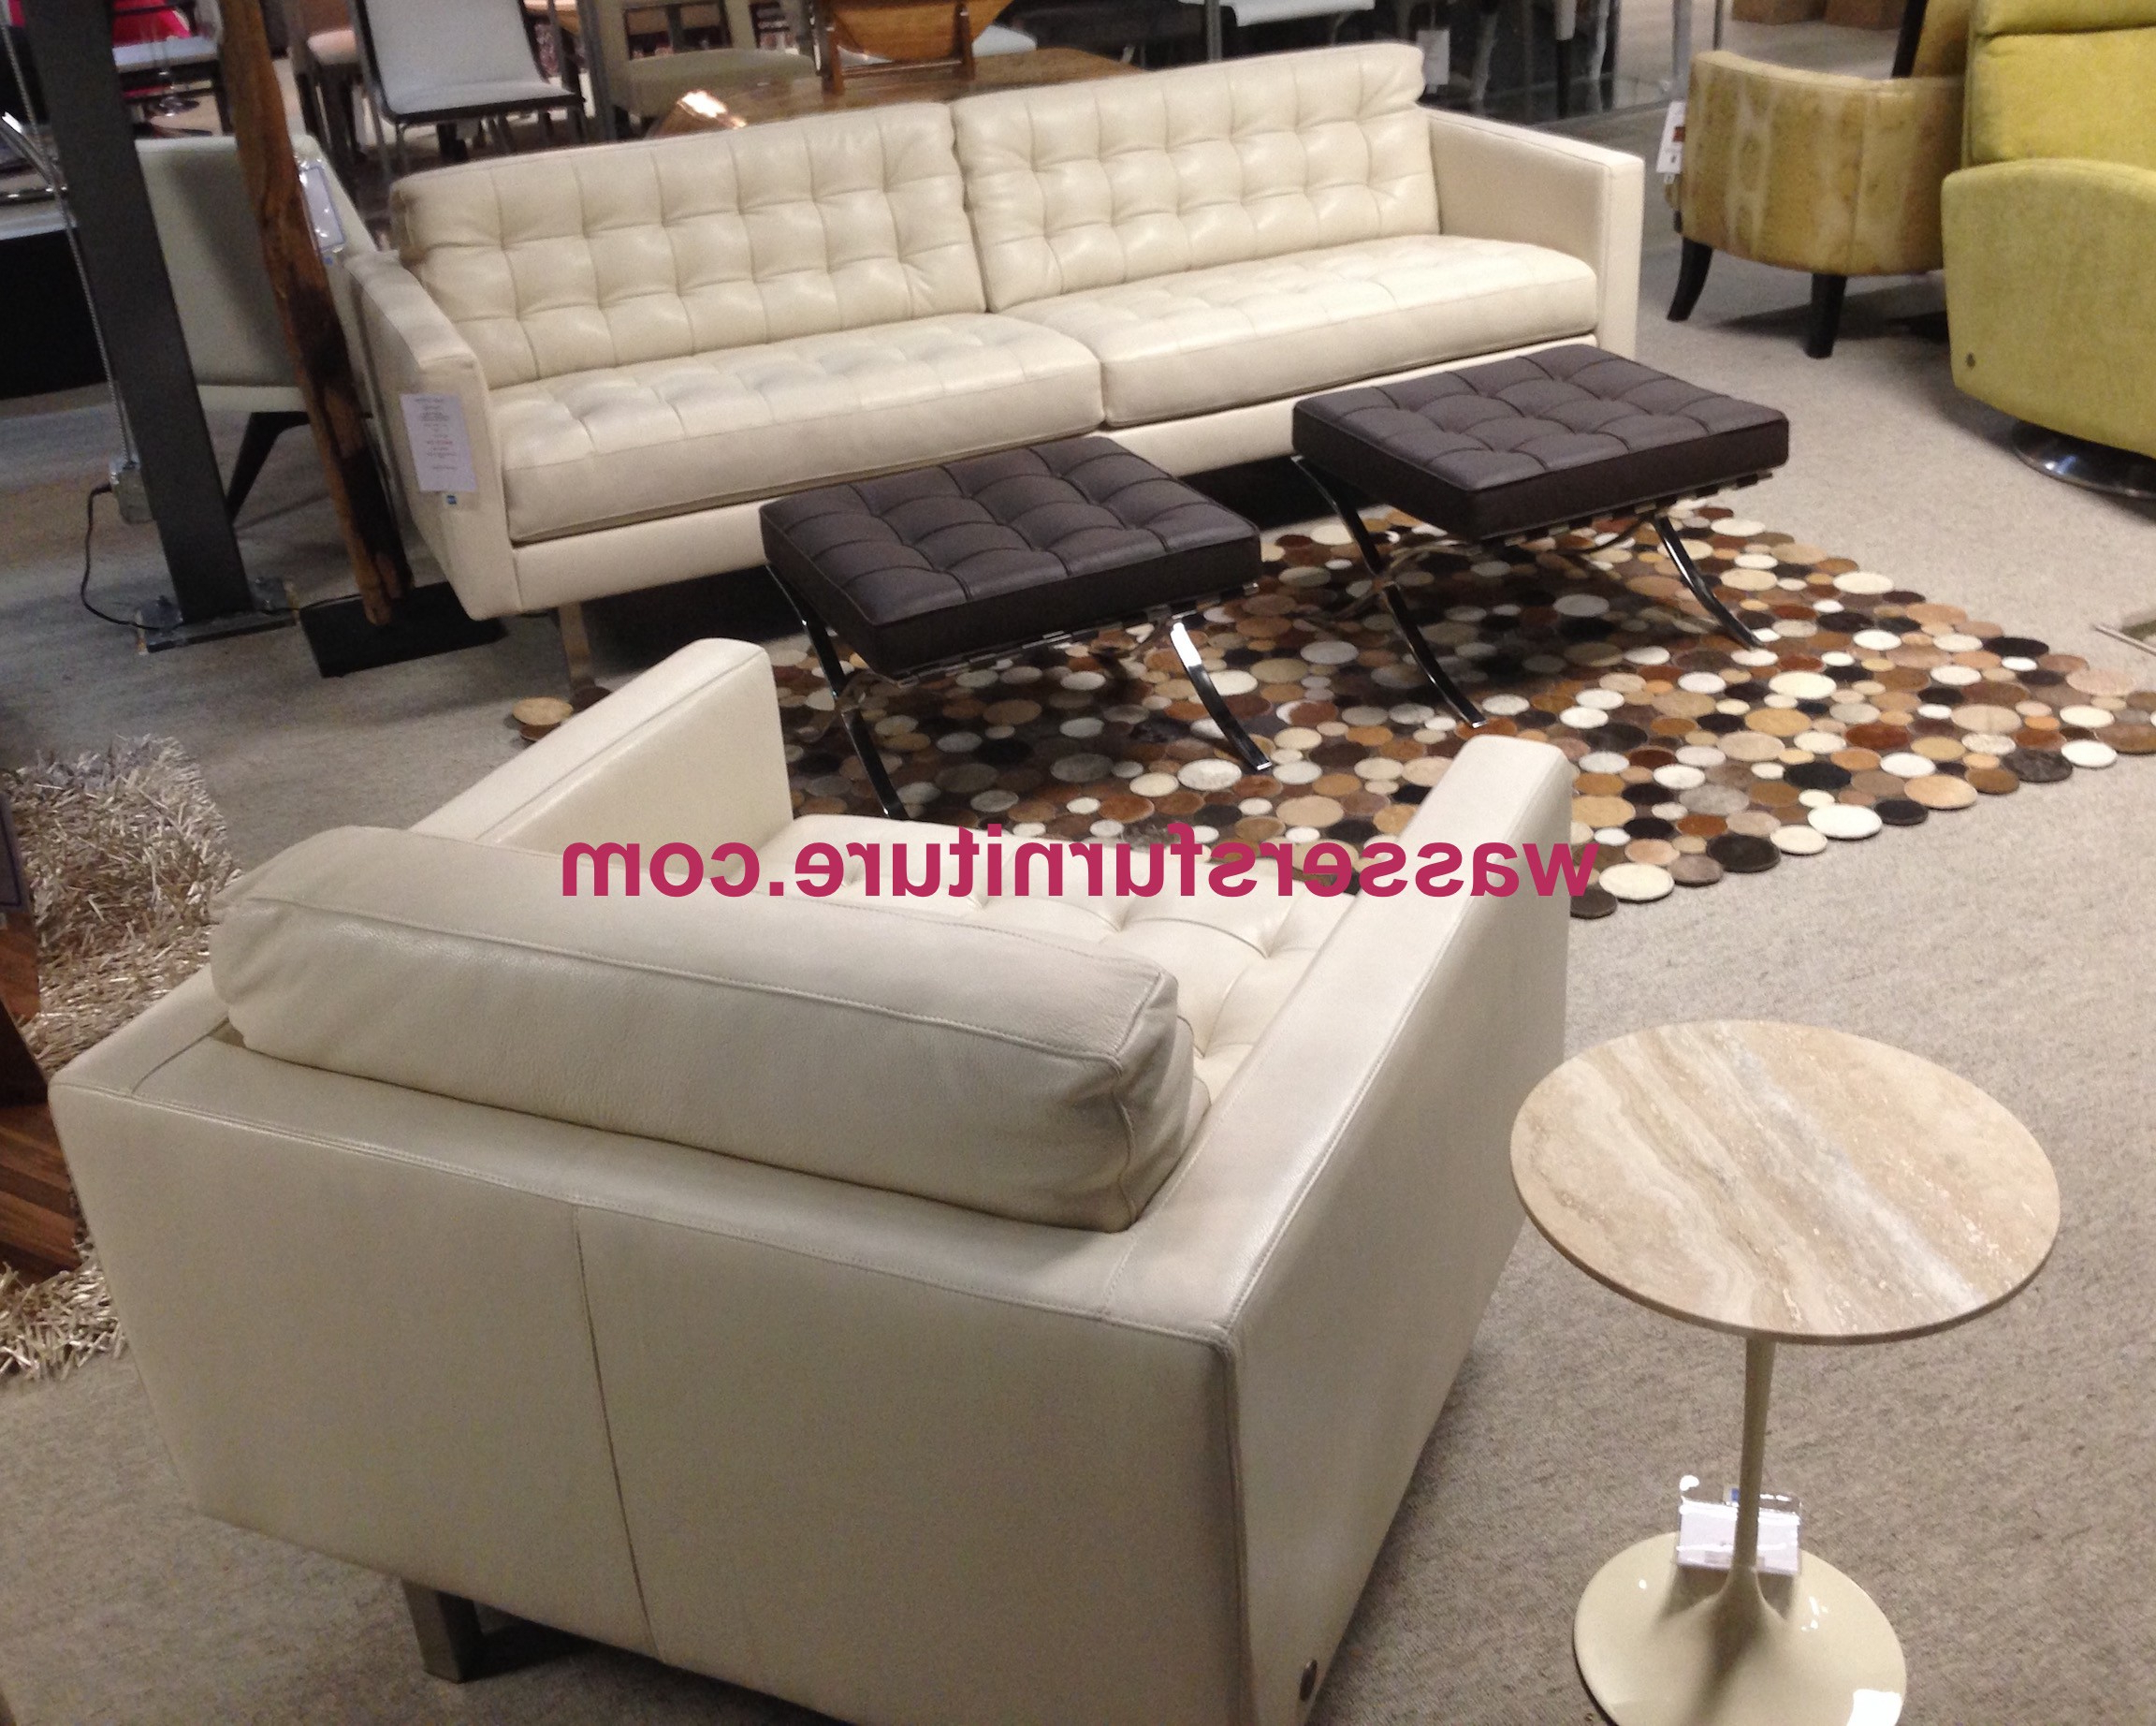 American Leather – Parker – Sofa – Bison White – Leather – In Stock! Intended For Well Liked Parker Sofa Chairs (View 19 of 20)